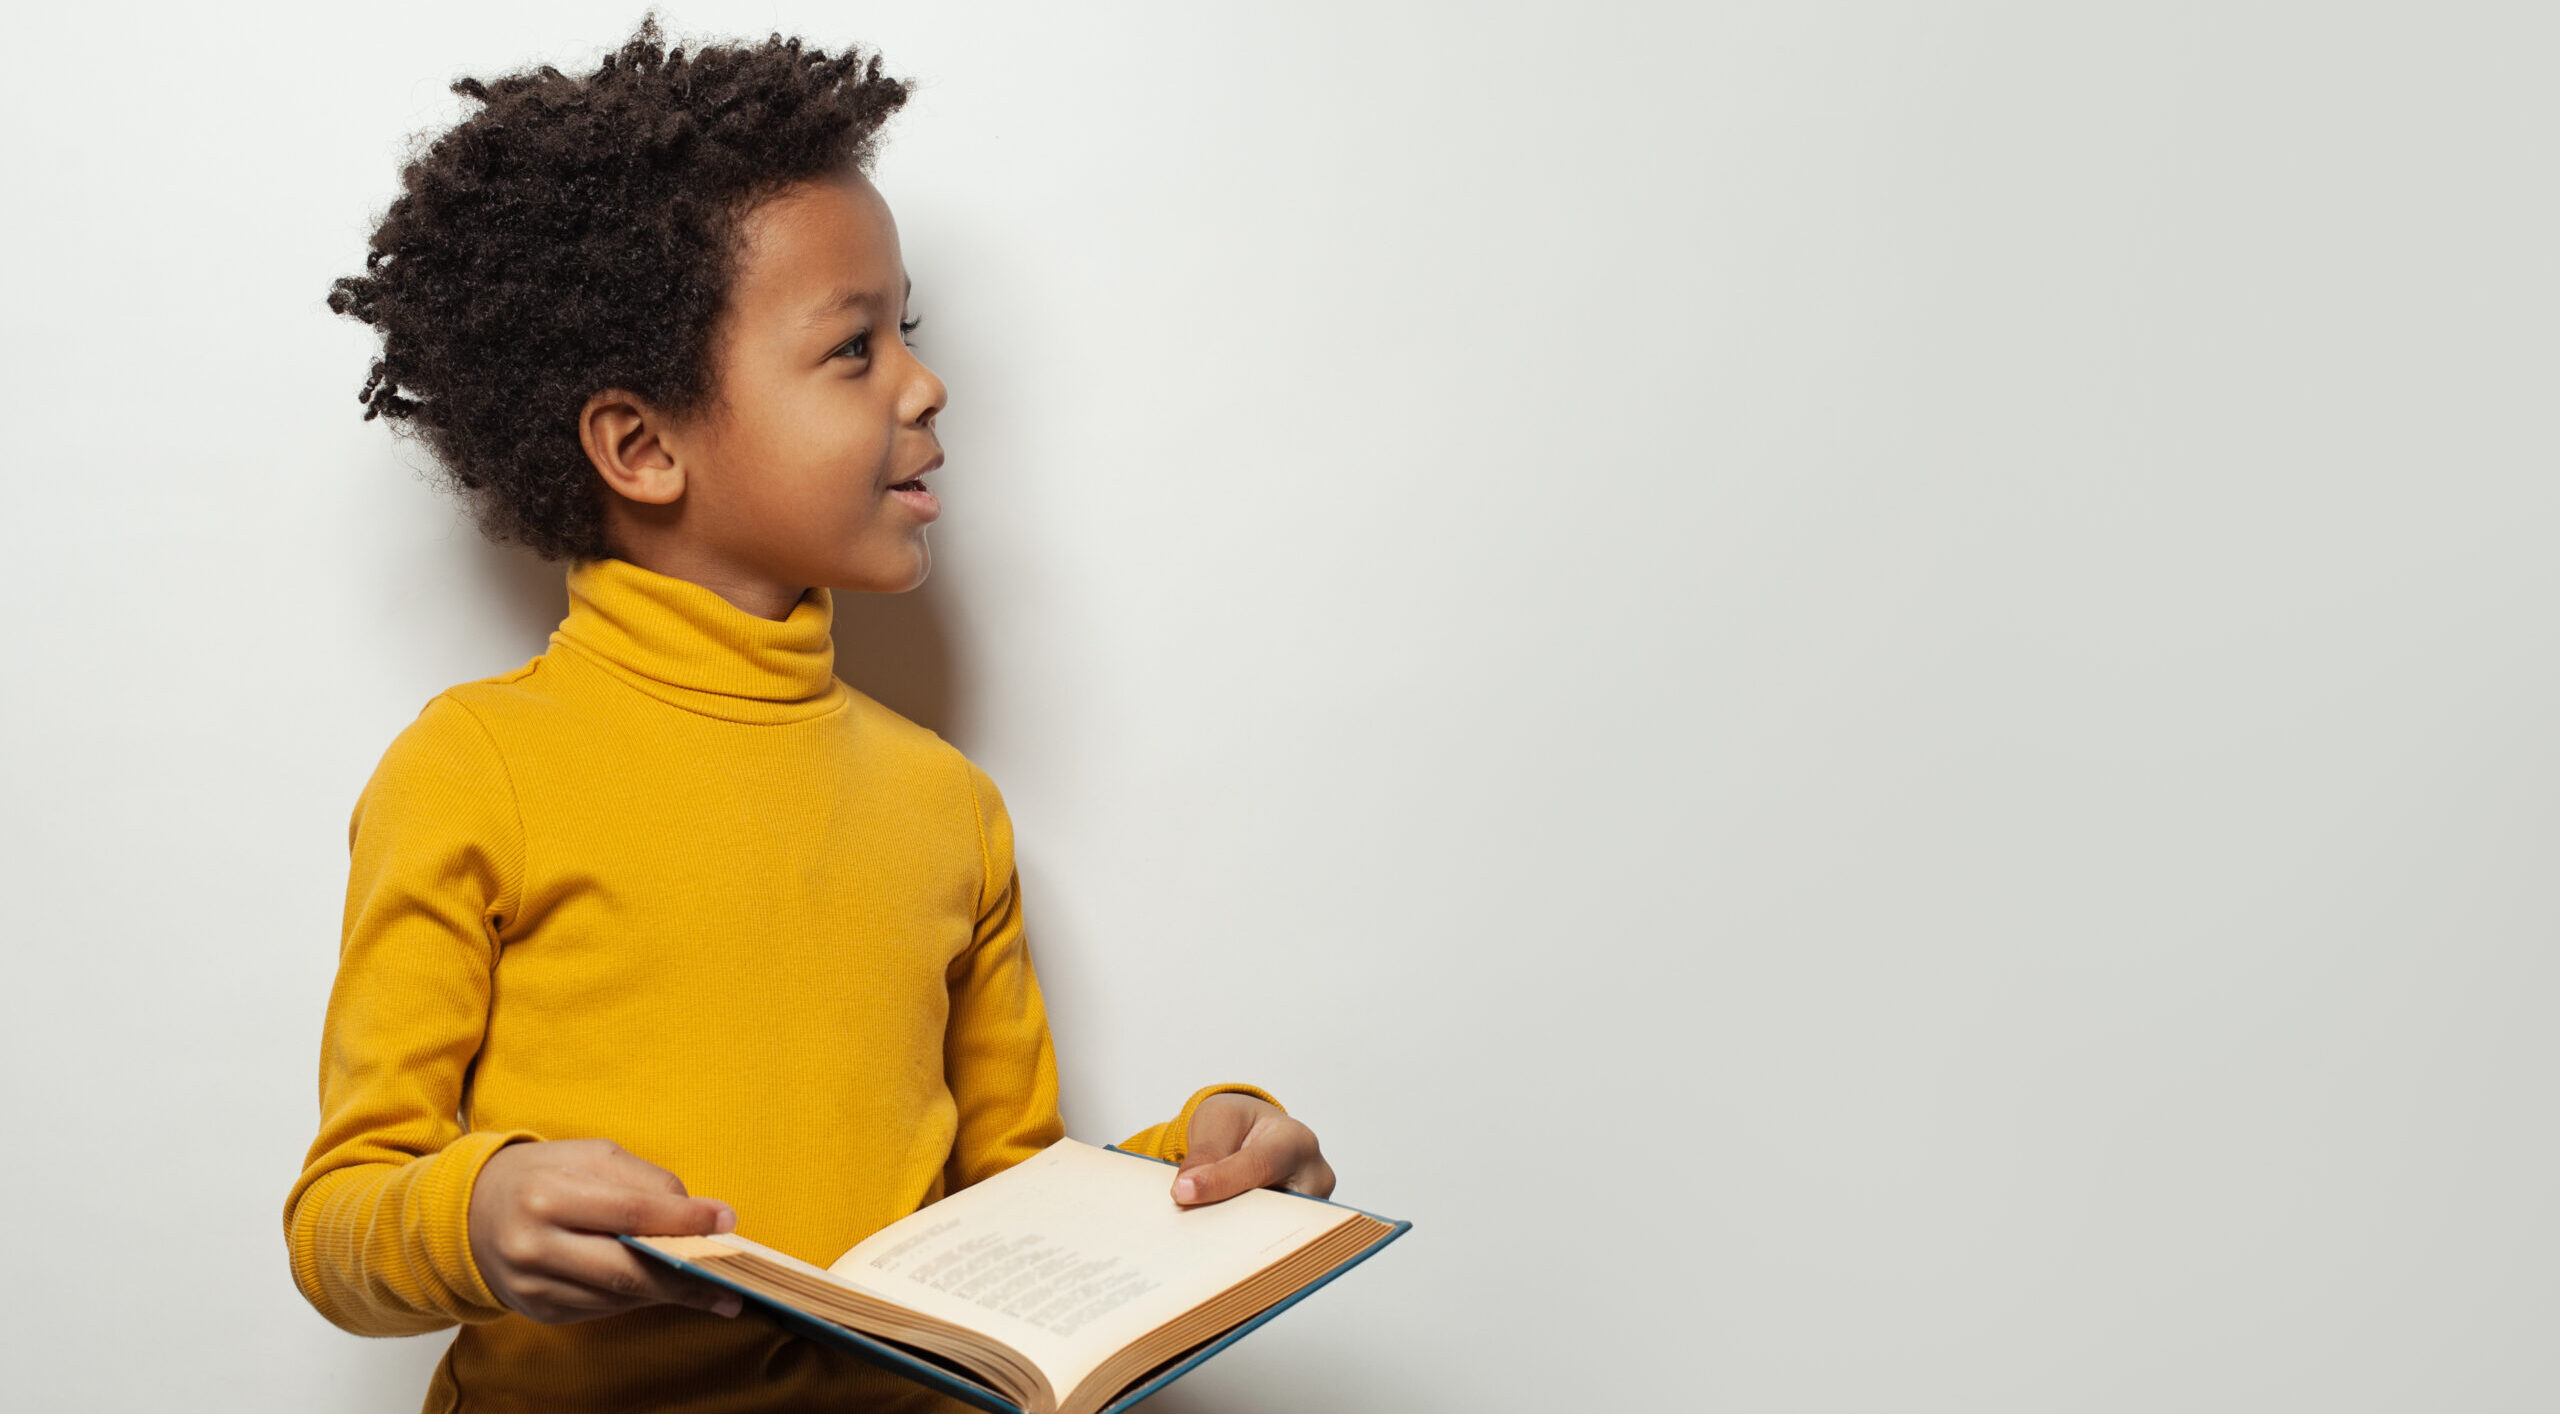 Child holding a book